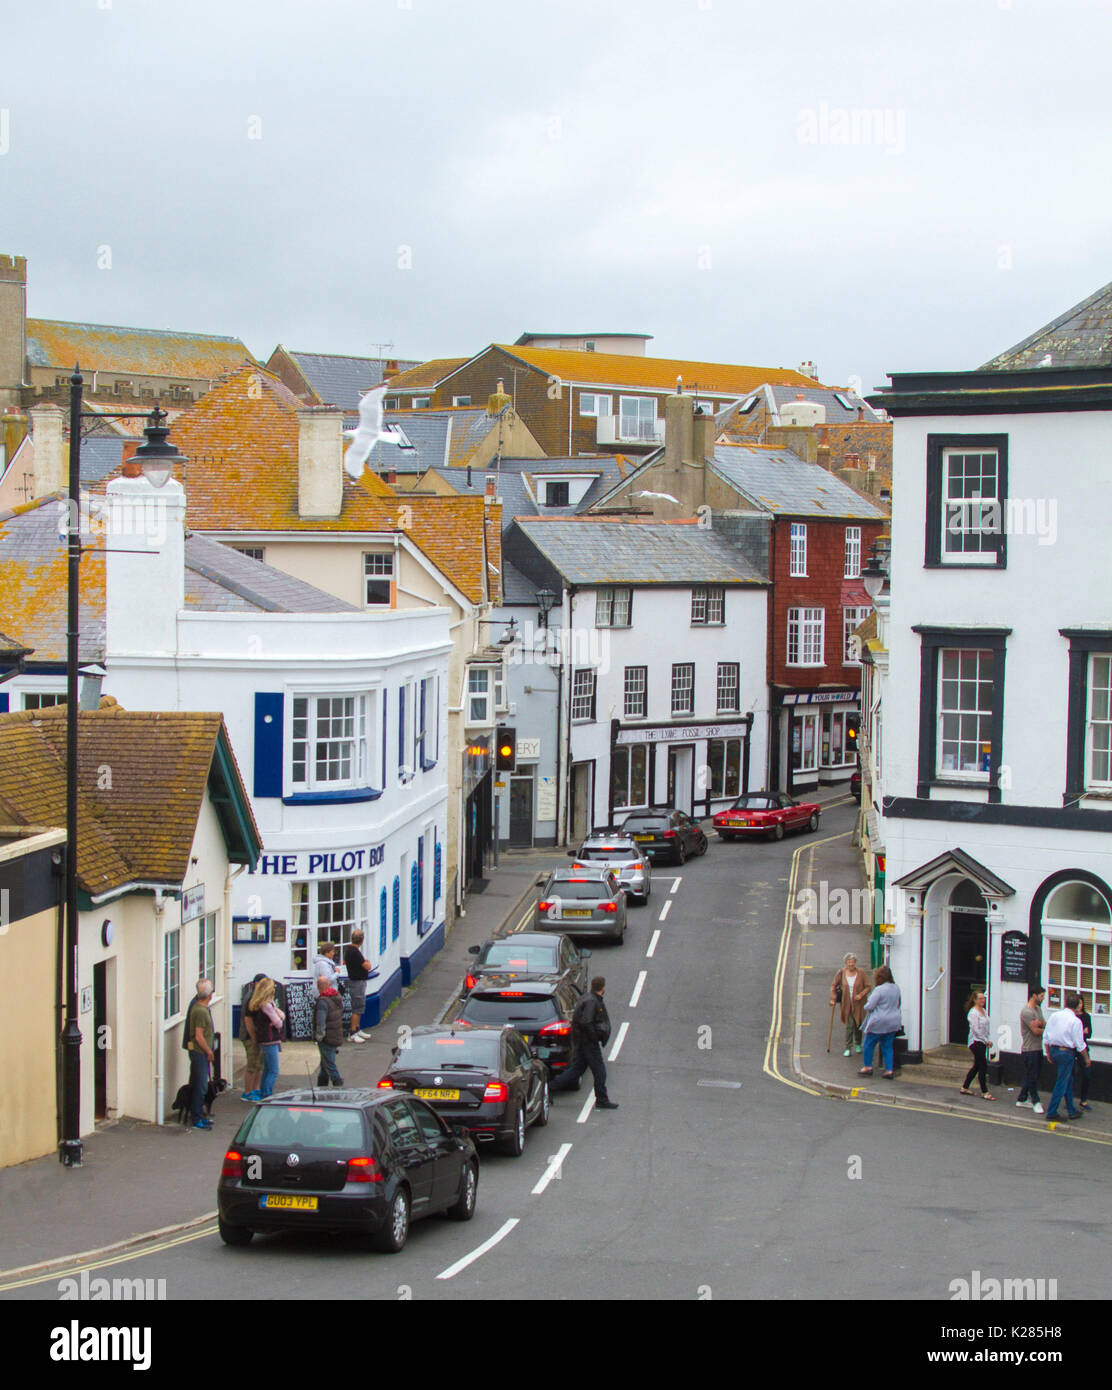 Traffic congestion with row of cars at red traffic lights in narrow street between high buildings in Lyme Regis, West Dorset, England - Stock Image